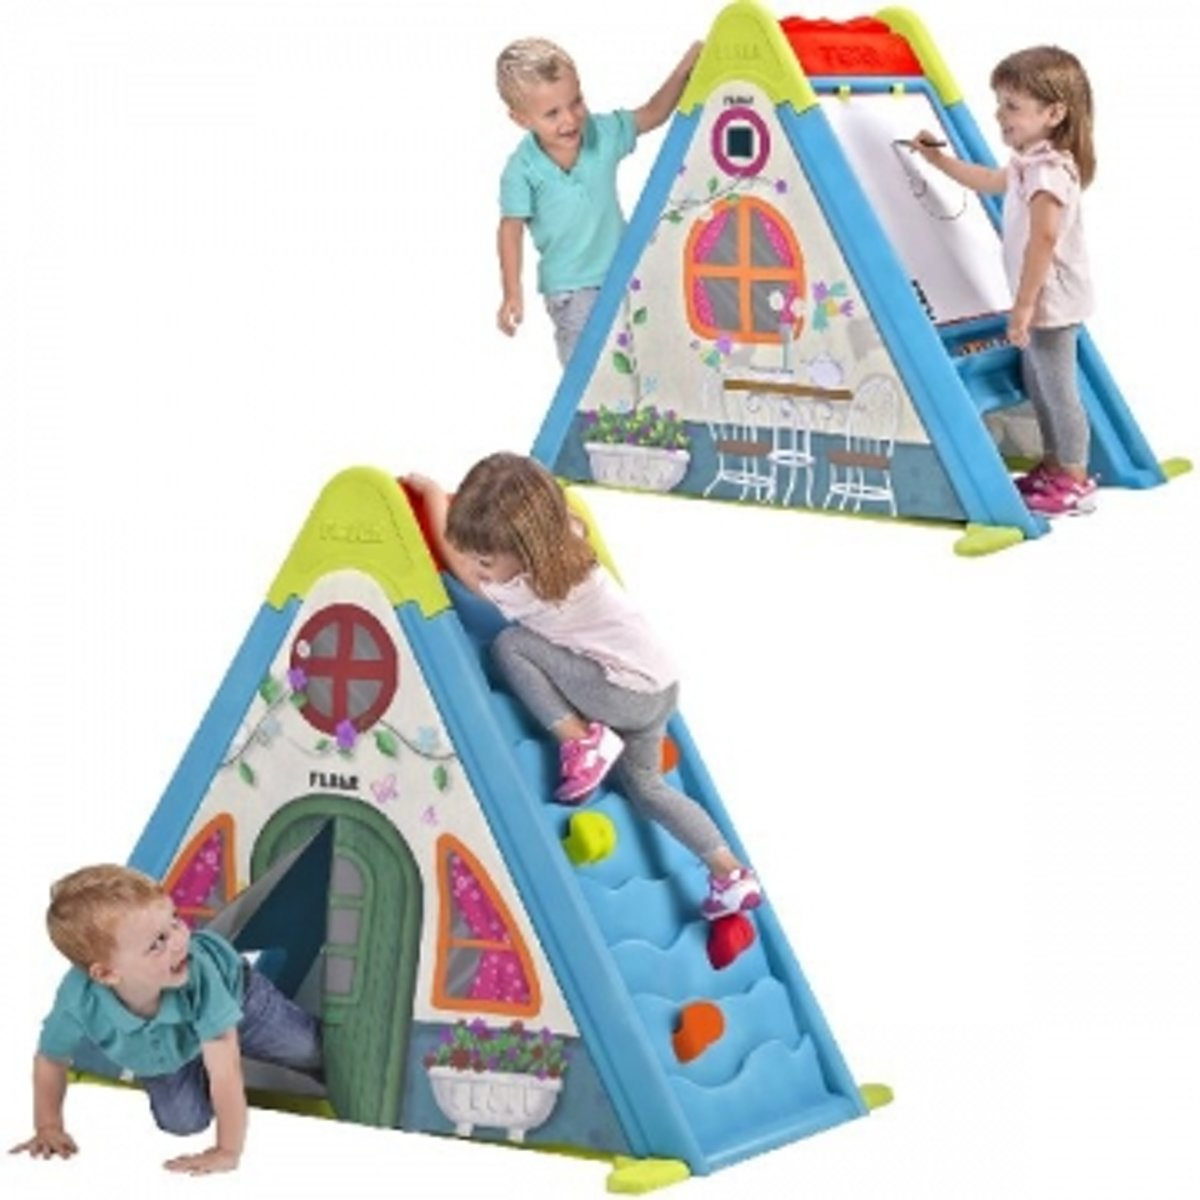 activity house 3in1 -